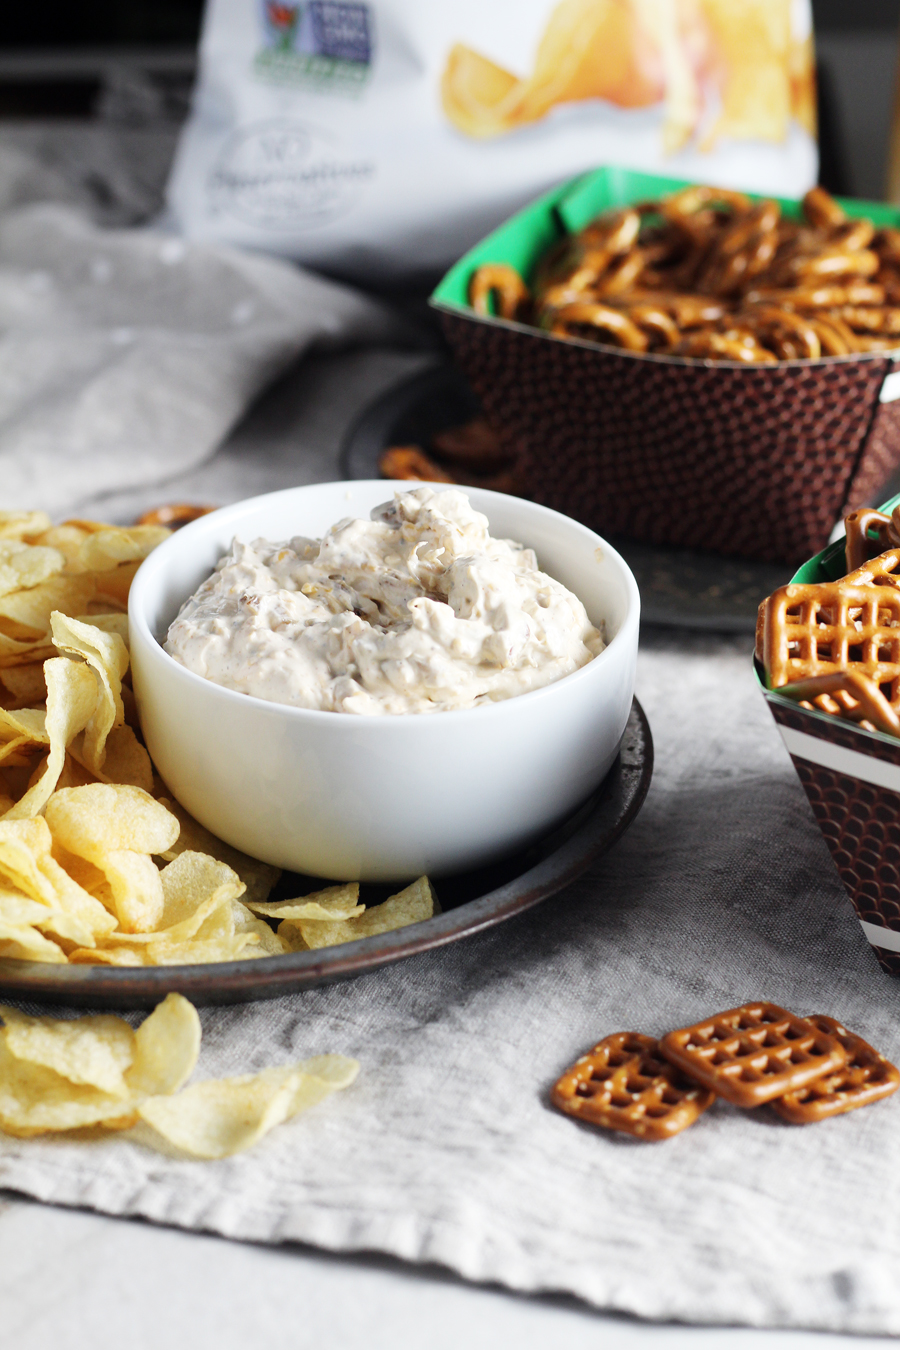 Why buy when you can make the best French Onion Dip ever?